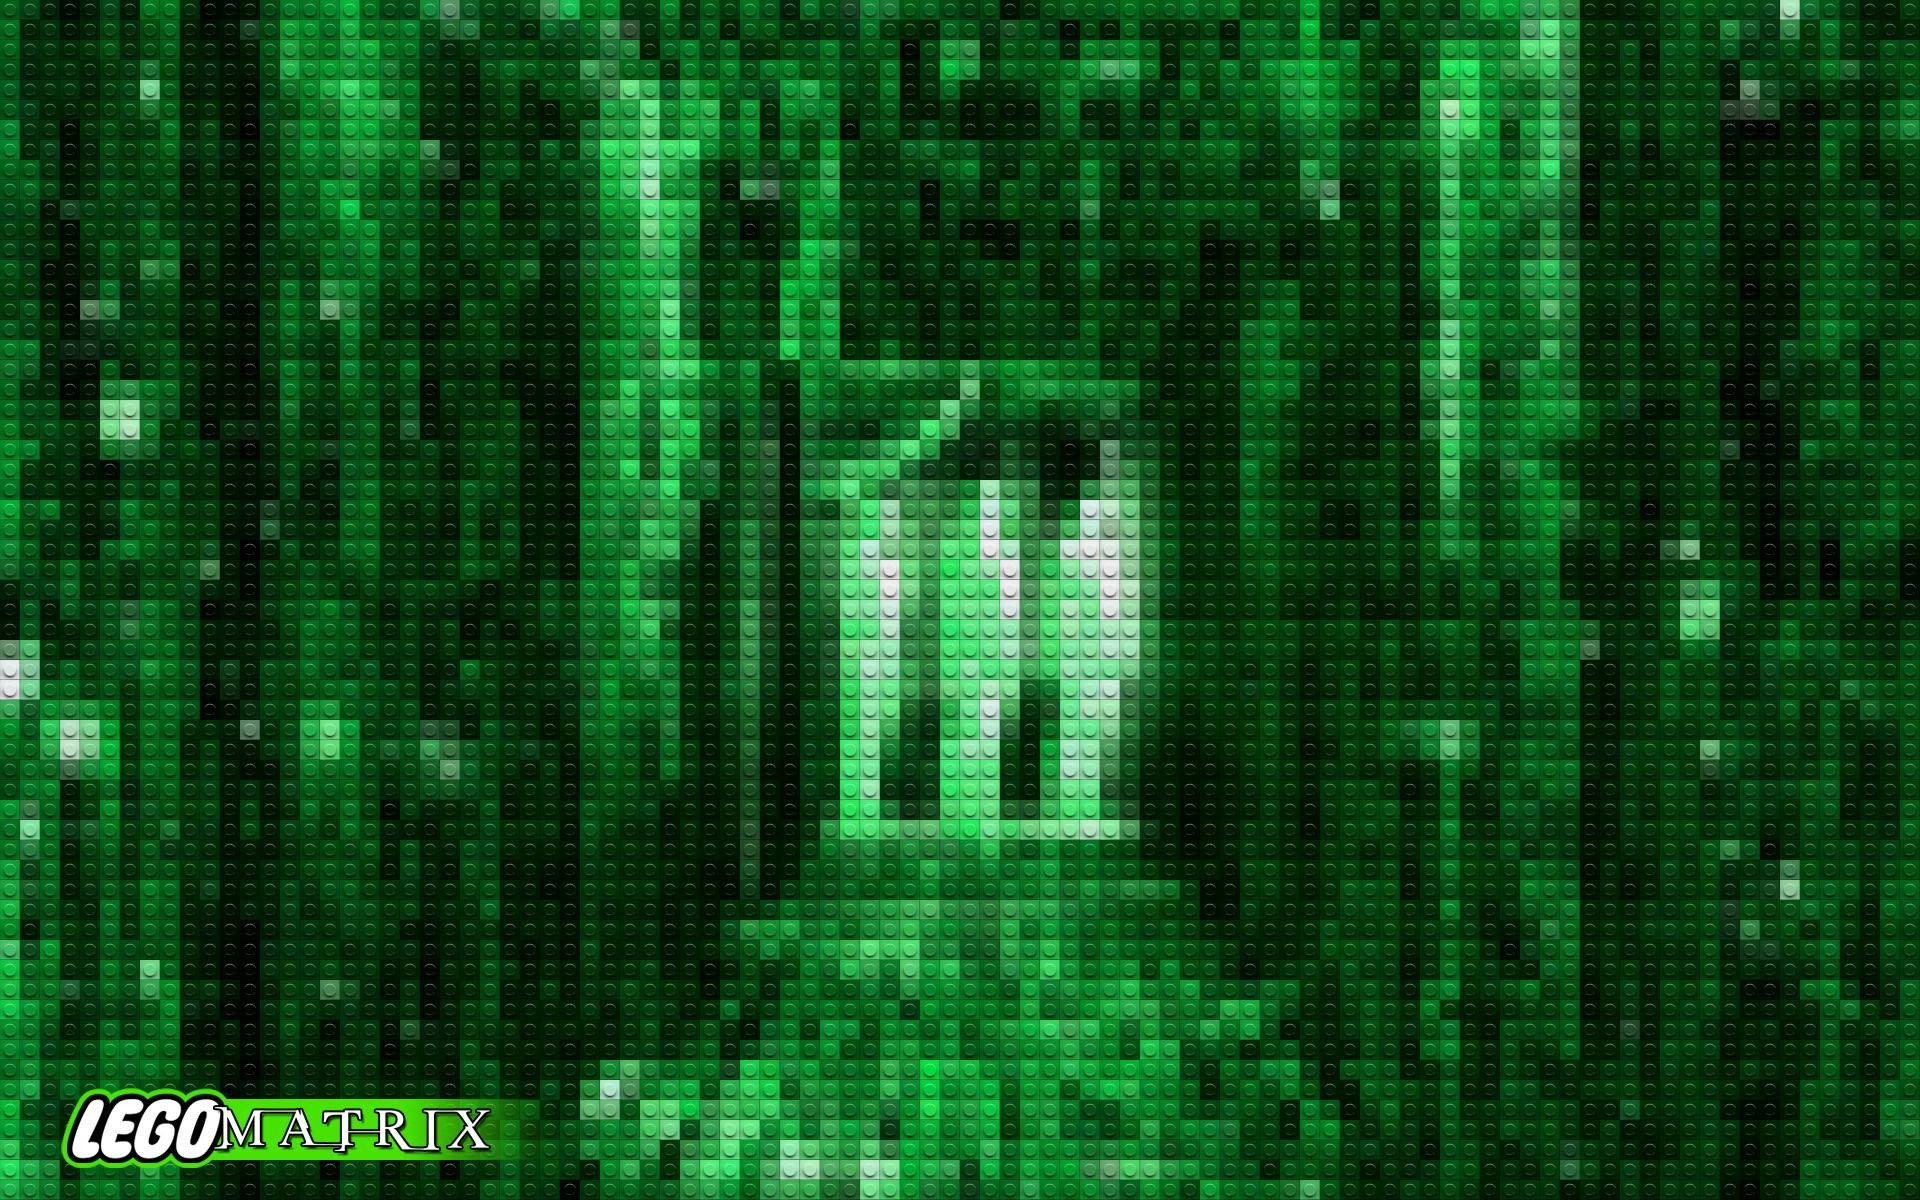 The matrix backgrounds